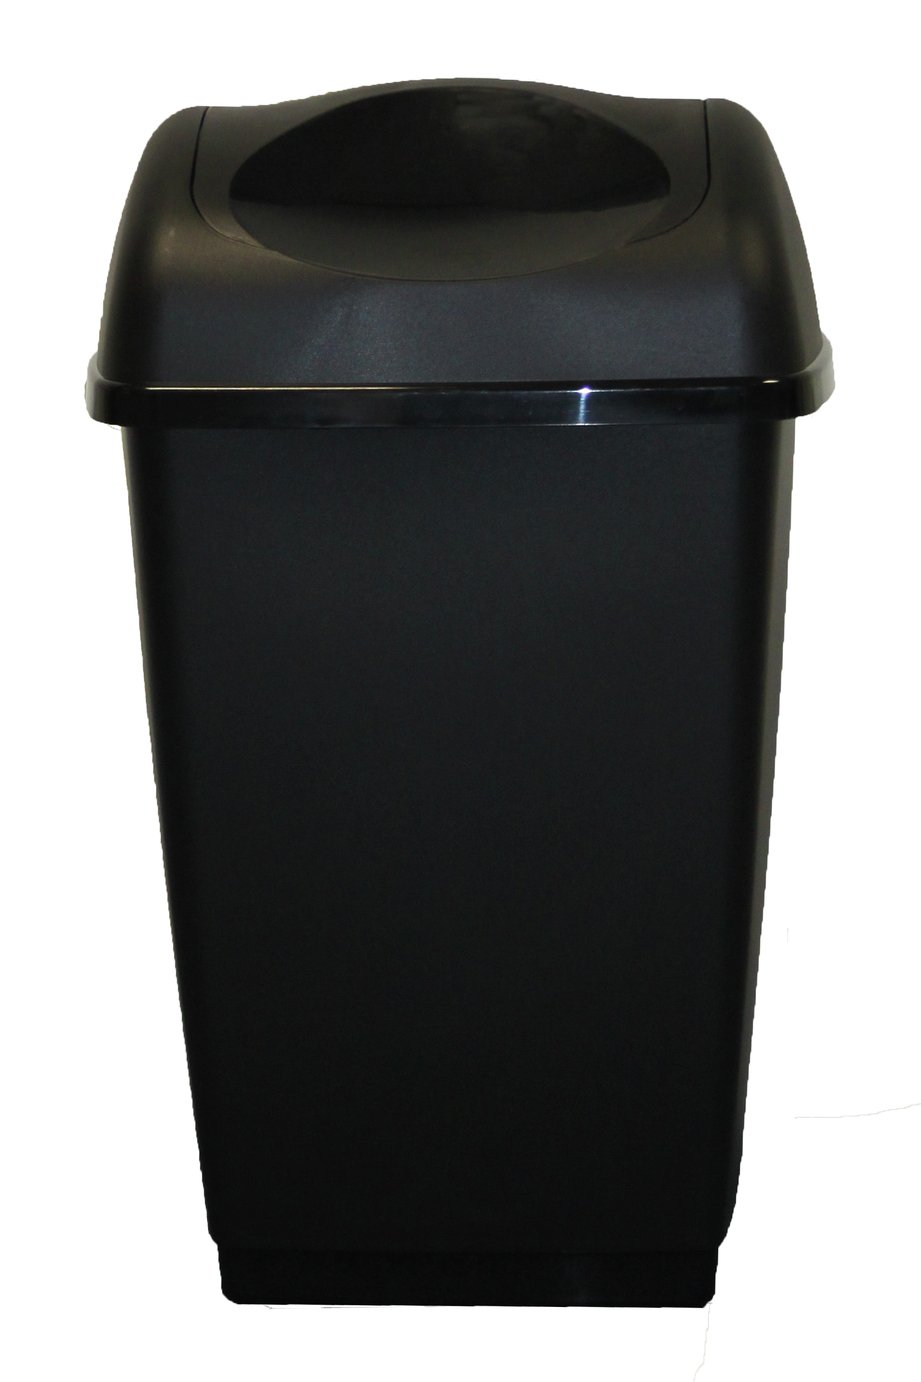 Tontarelli 25 Litre Swing Top Bin - Black